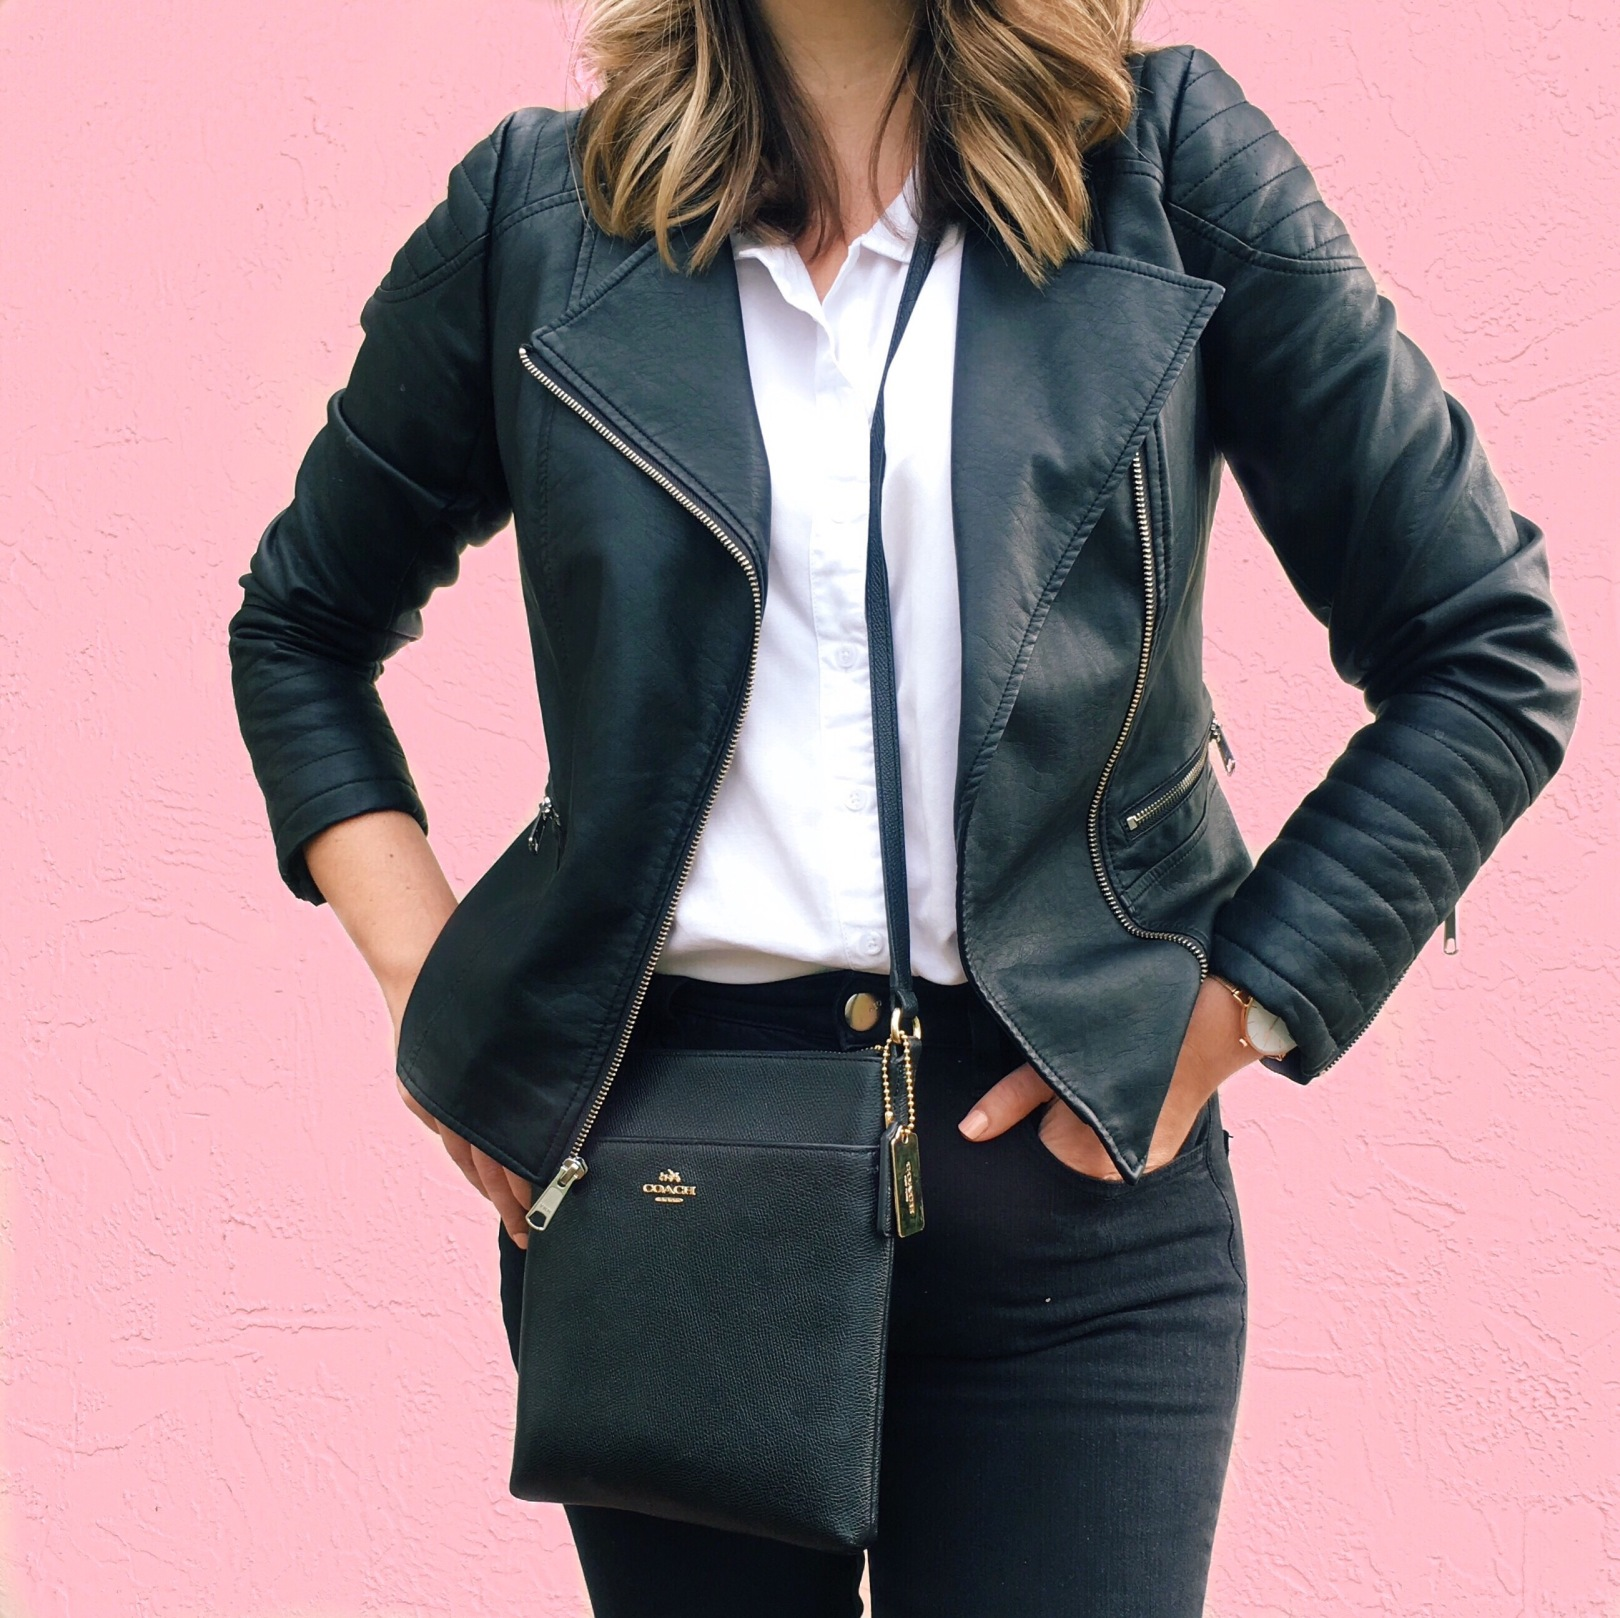 Faux Leather Biker Jacket, Wardrobe Staples, Capsule Wardrobe, Style Blog, Budget Style